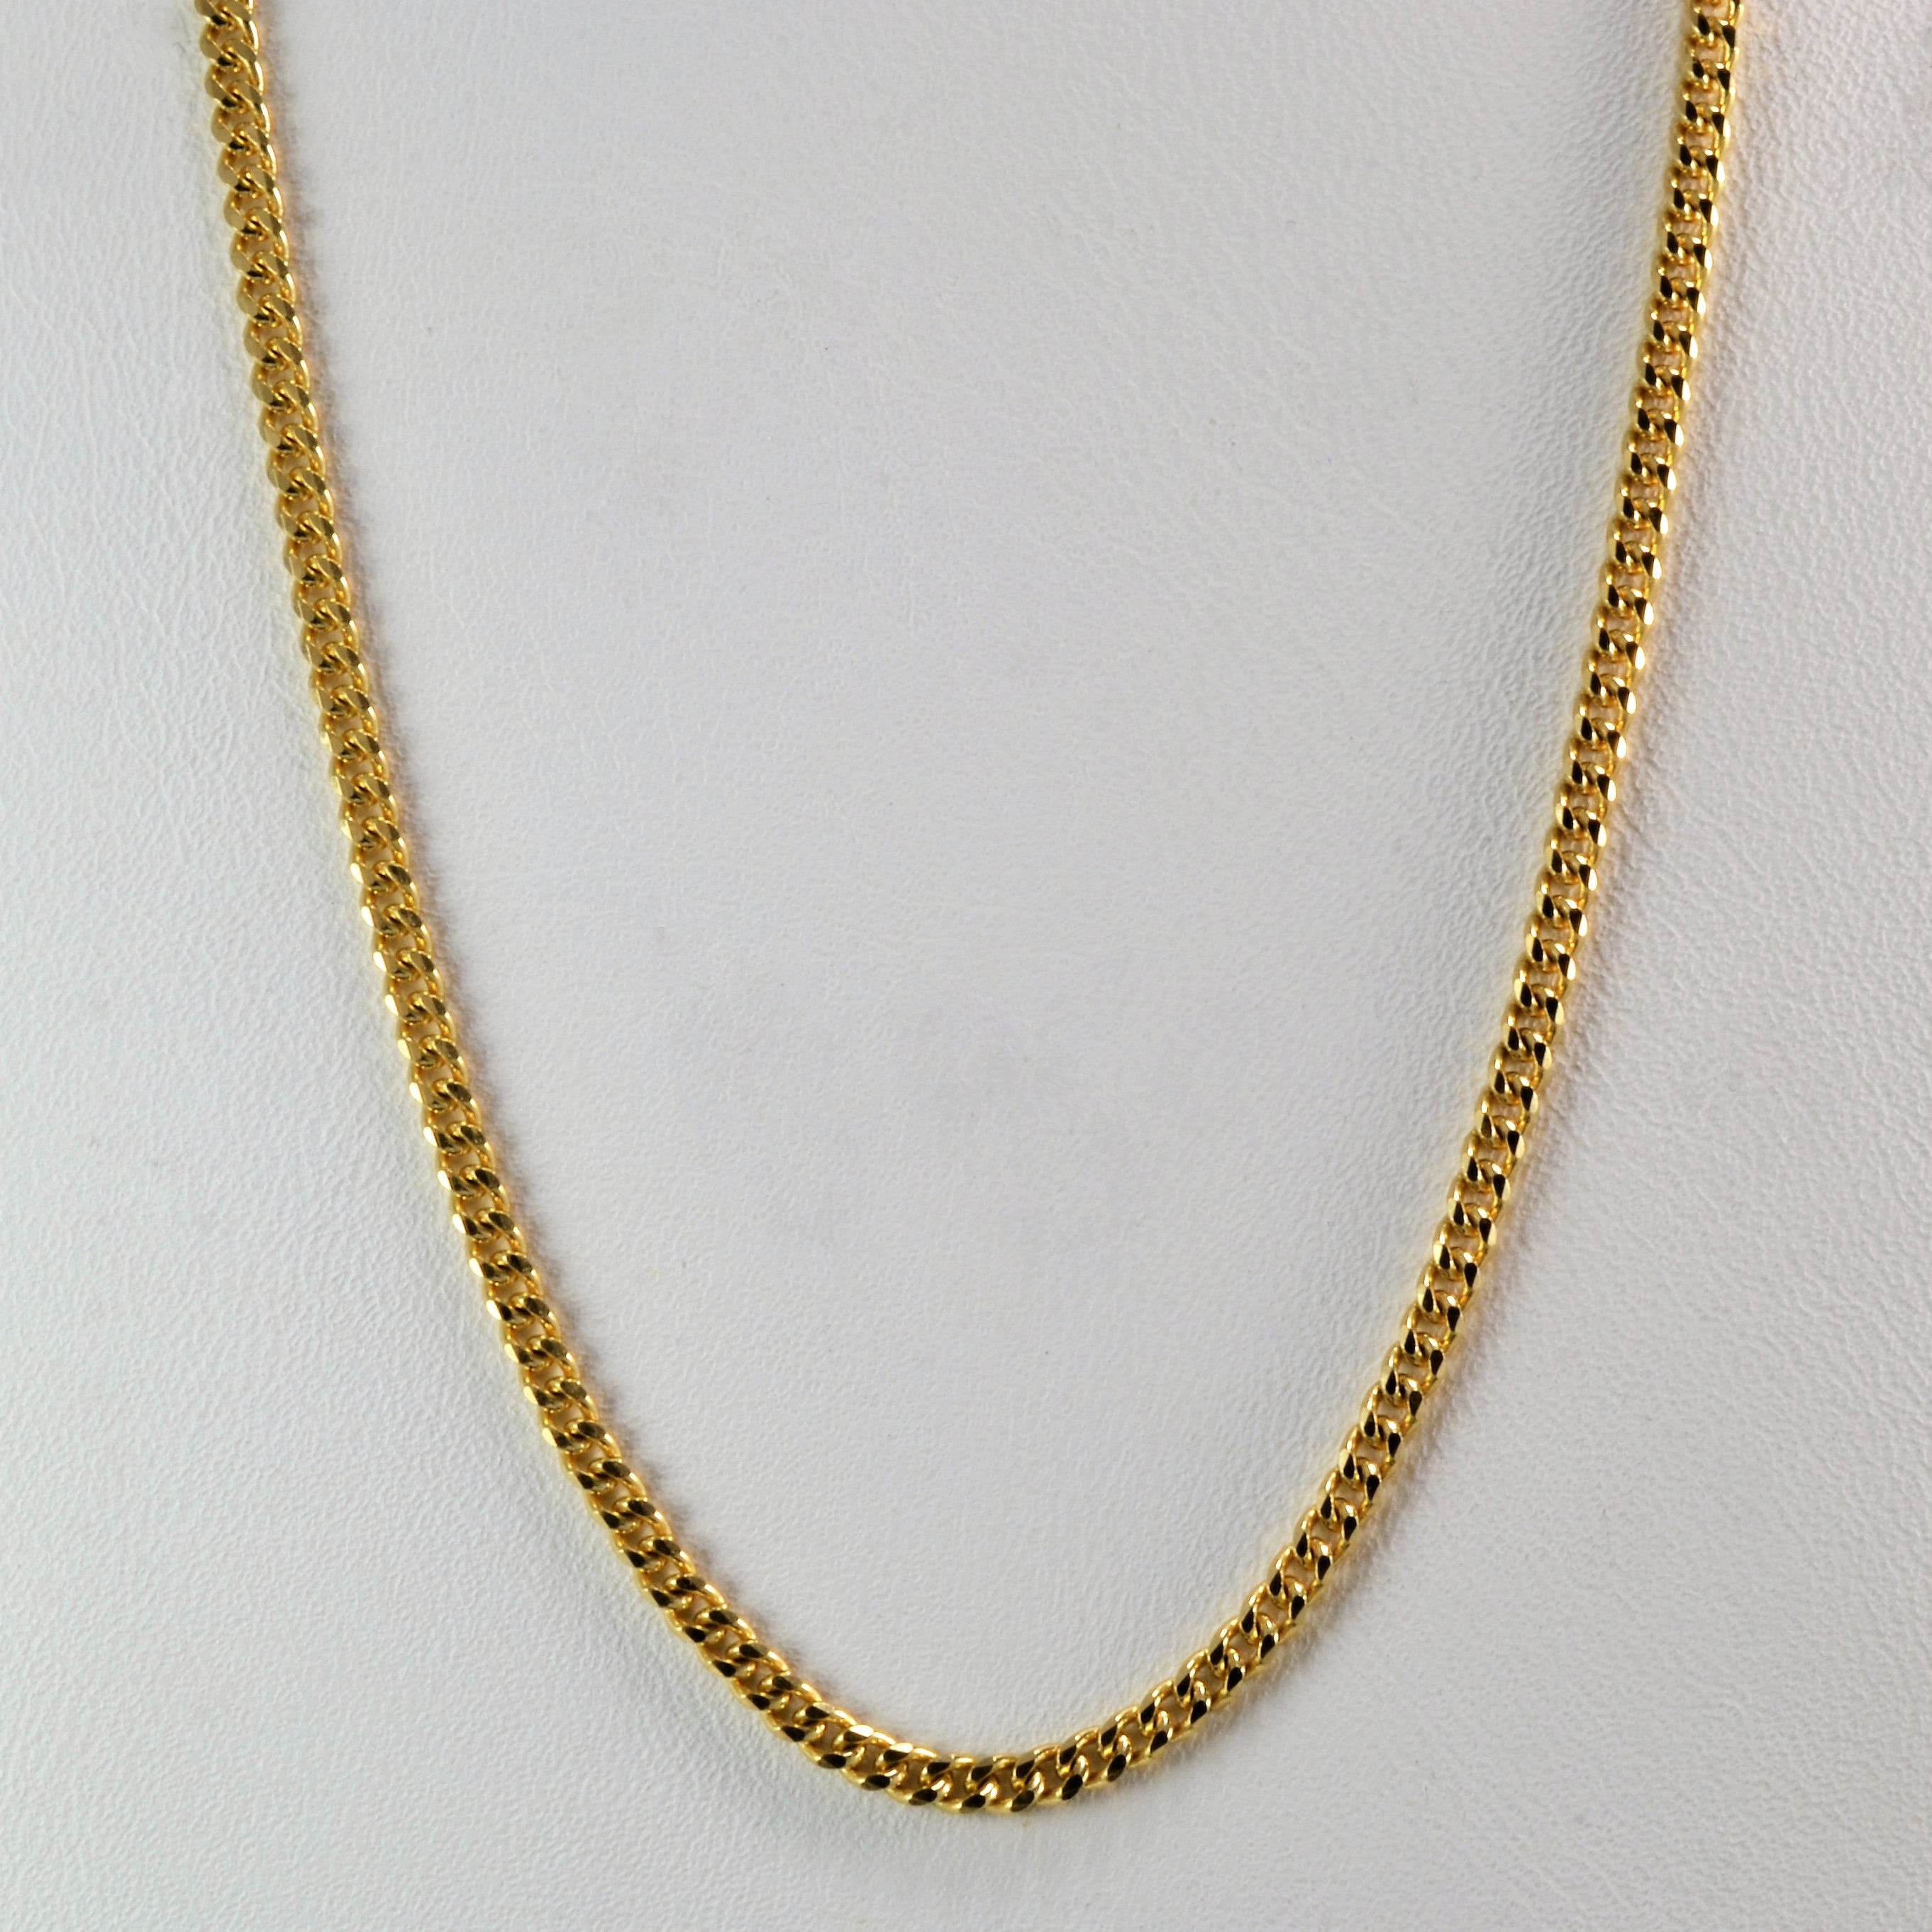 Yellow Gold Curb Link Chain | 17"